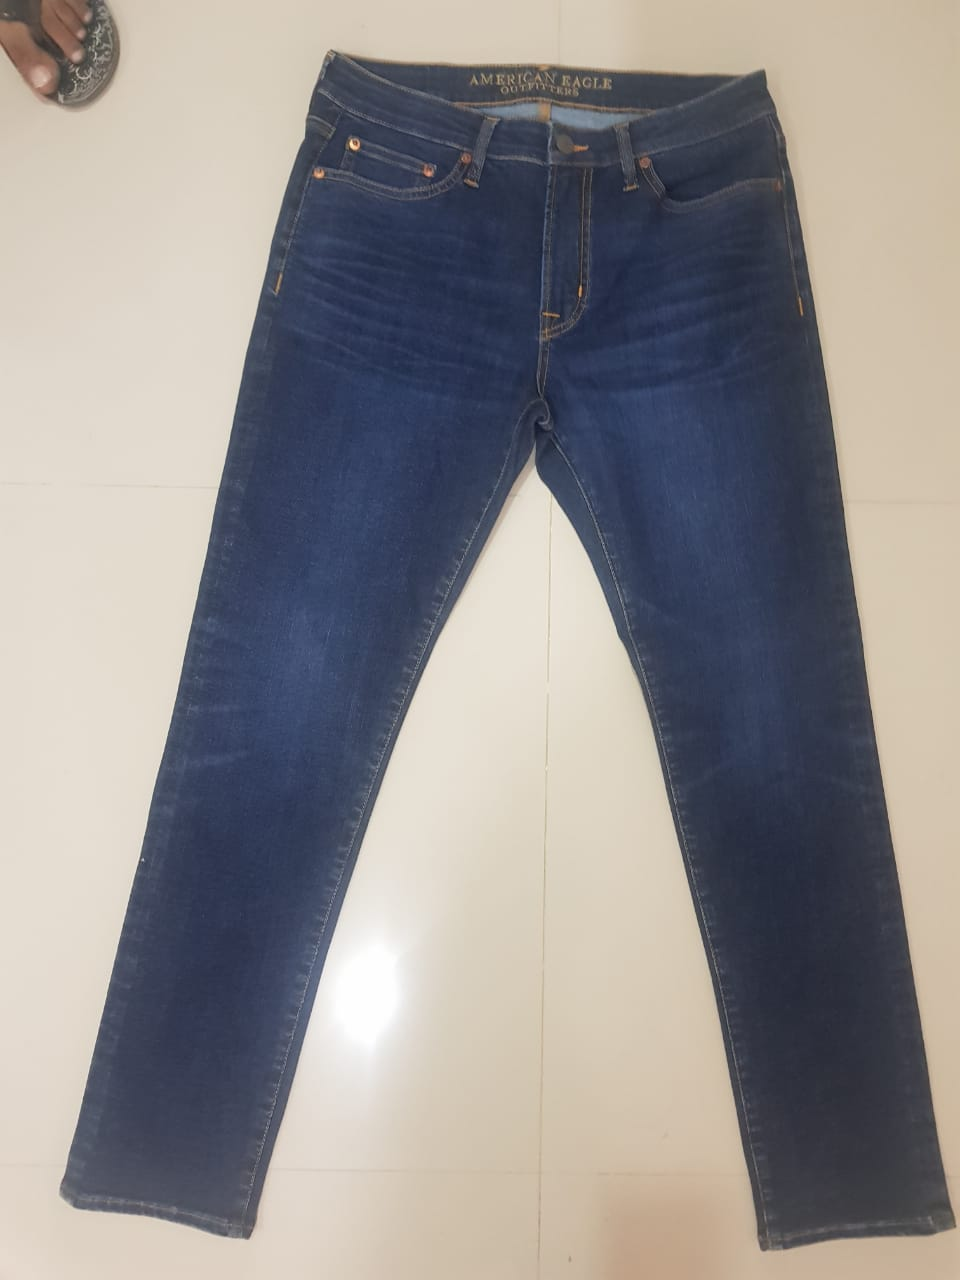 34888 - American Eagle Men's & Women's Jeans - EXPORT ONLY USA